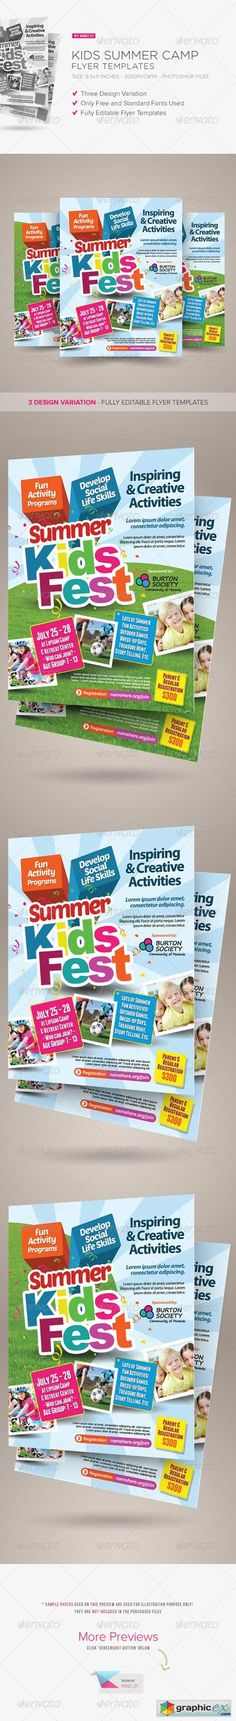 Kids Summer Camp Flyer Template Psd Download Here Https